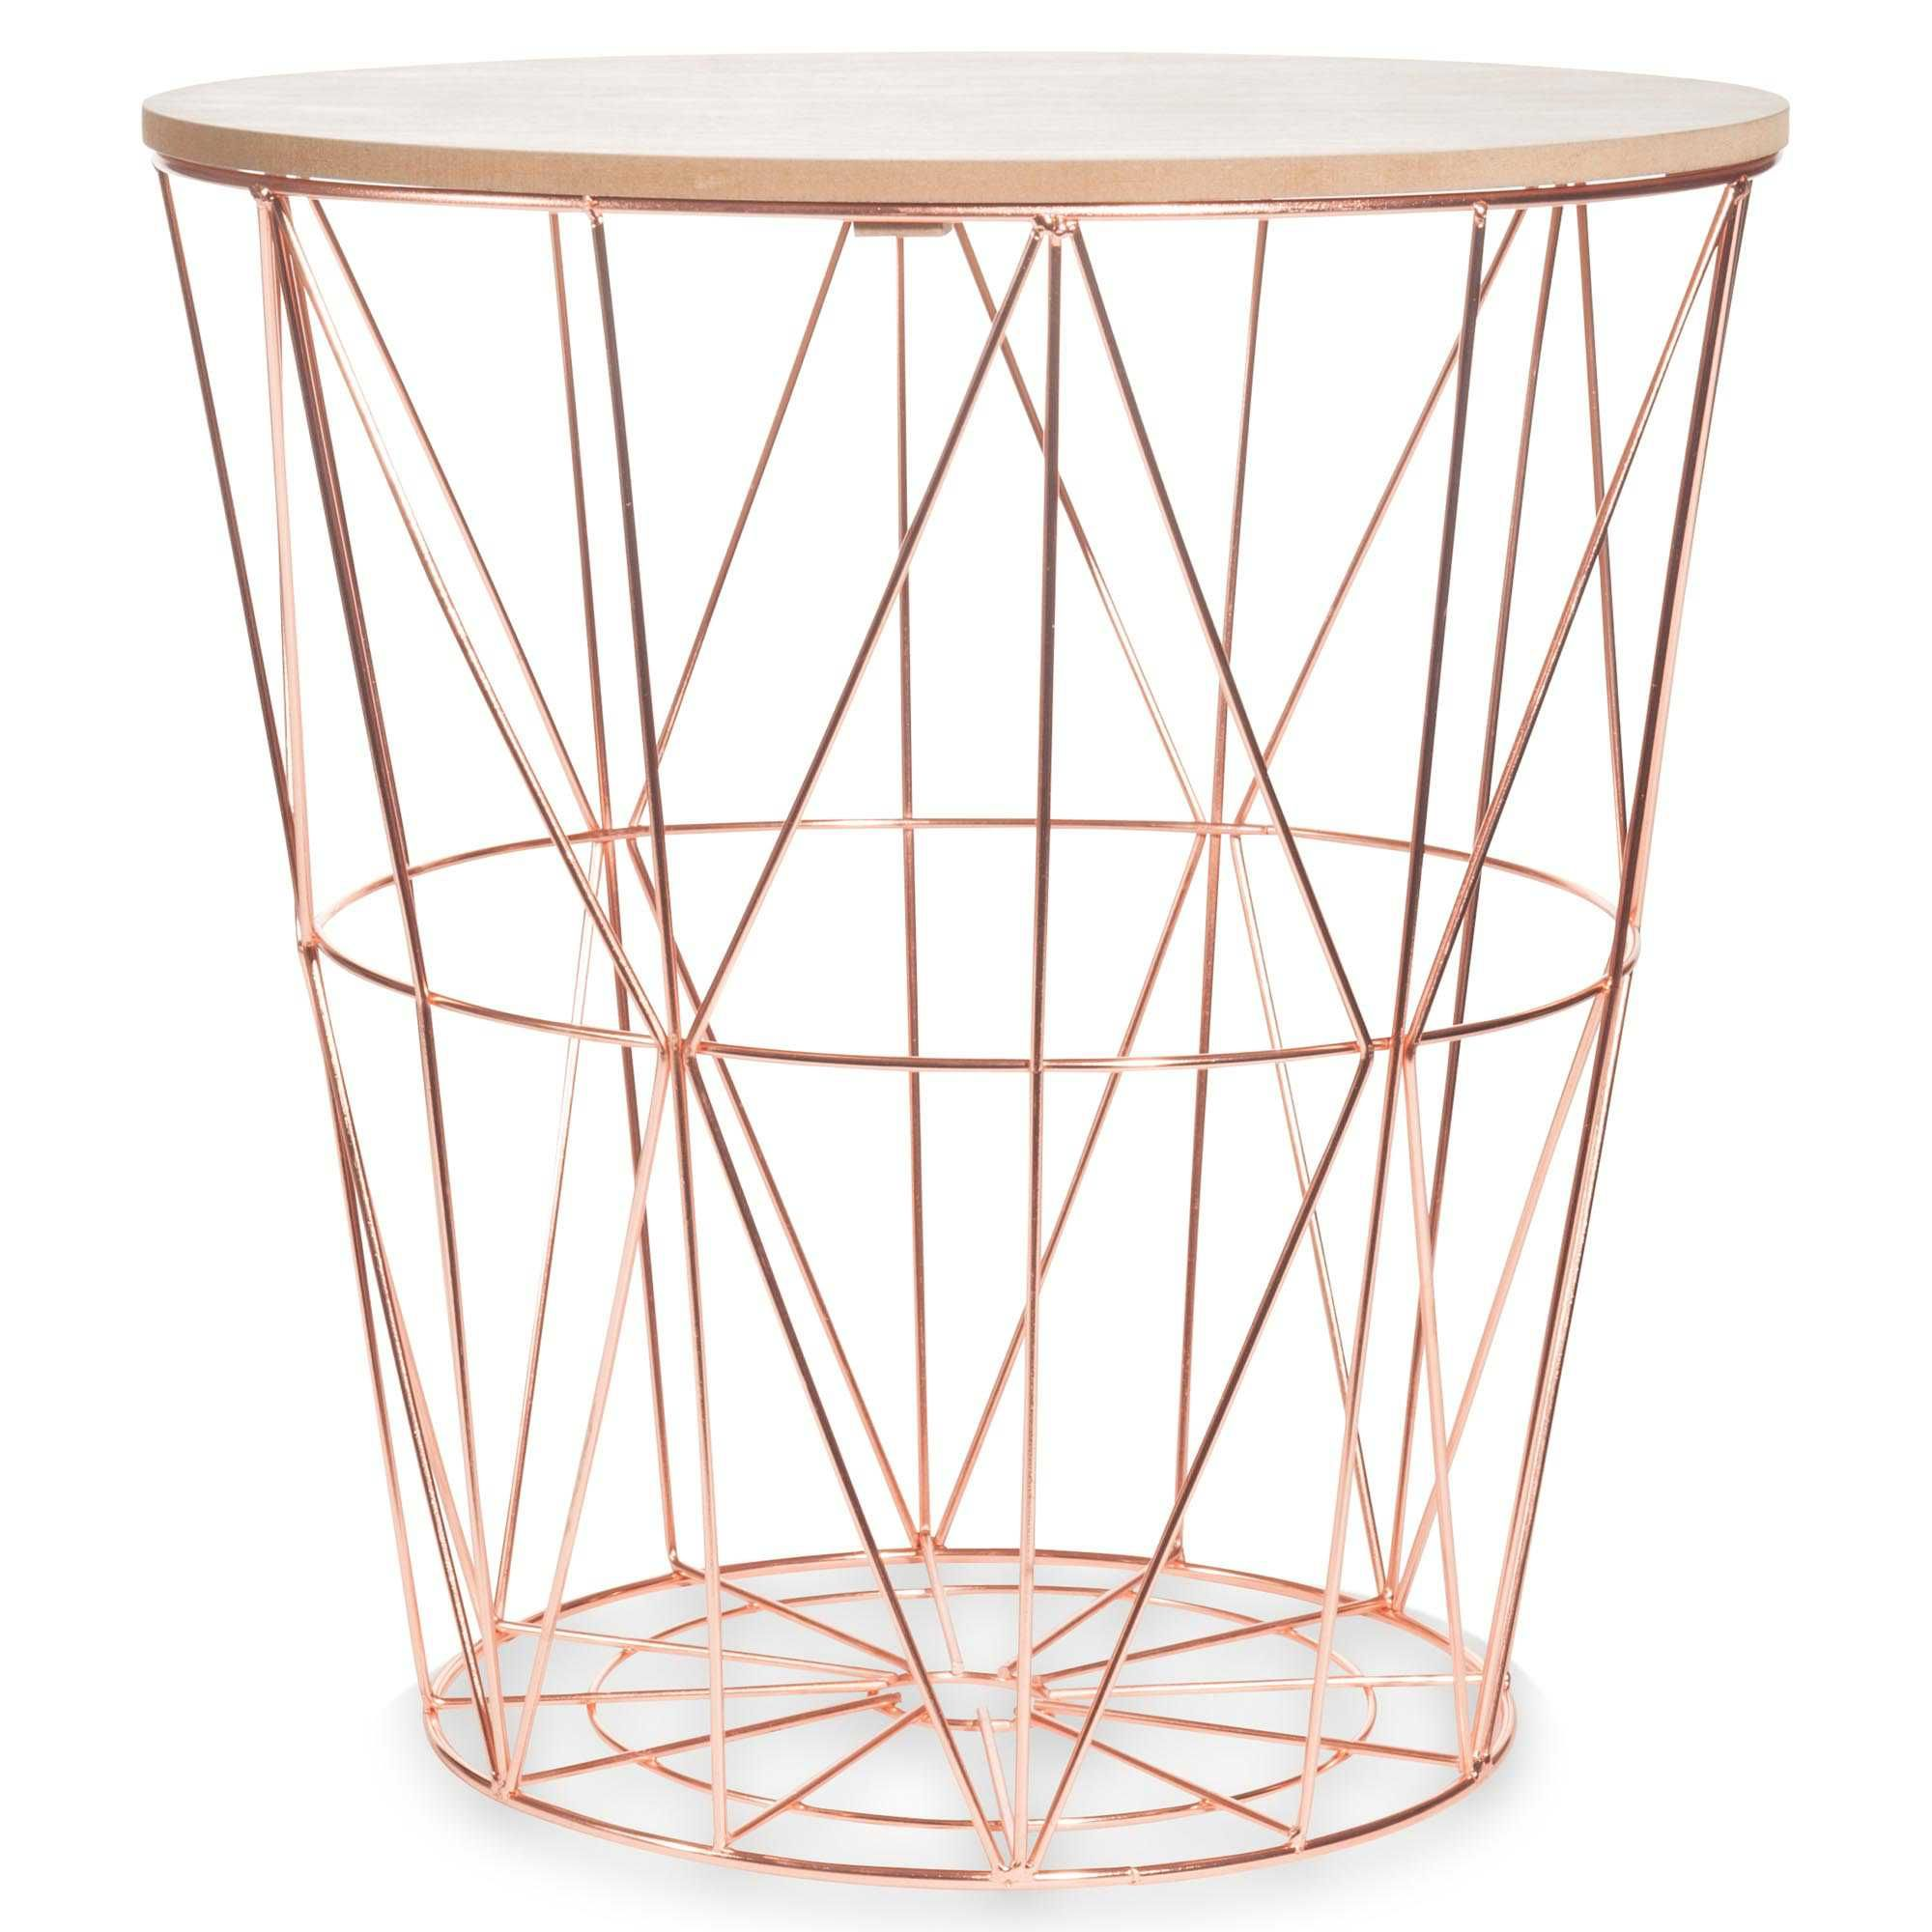 Table D Appoint Maison Du Monde.Meubles D Appoint Salon Metal Side Table Rose Gold